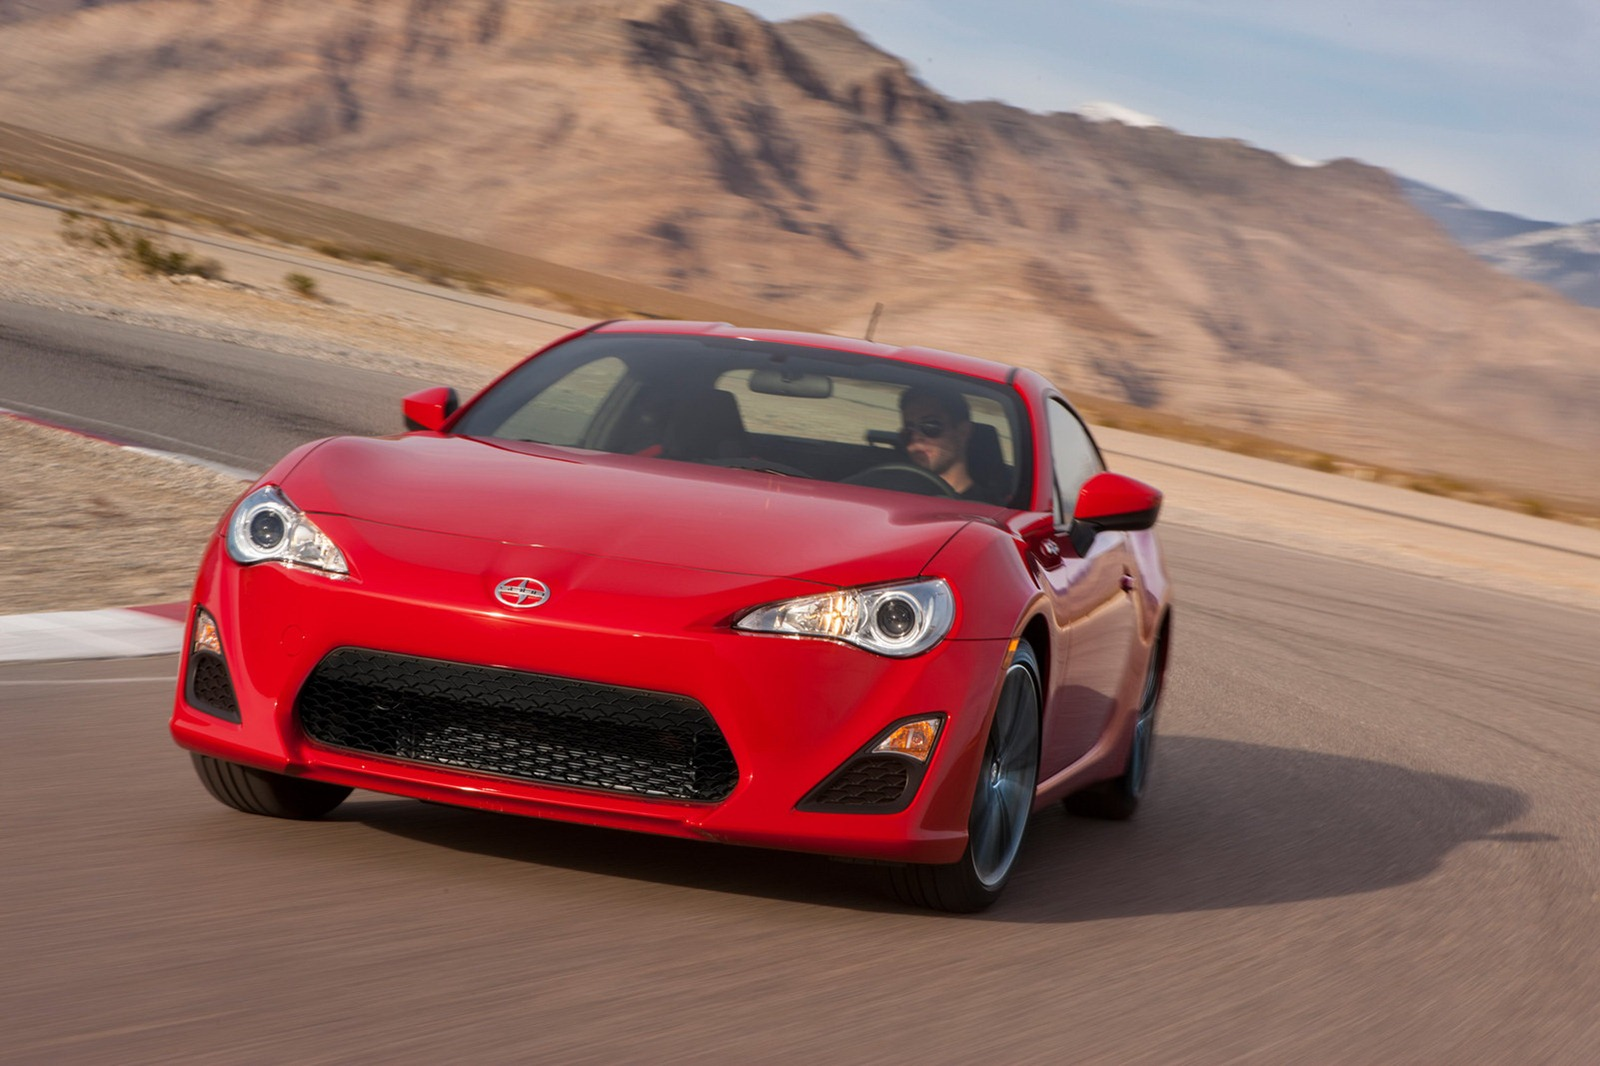 2014 scion fr s convertible information and photos zombiedrive. Black Bedroom Furniture Sets. Home Design Ideas